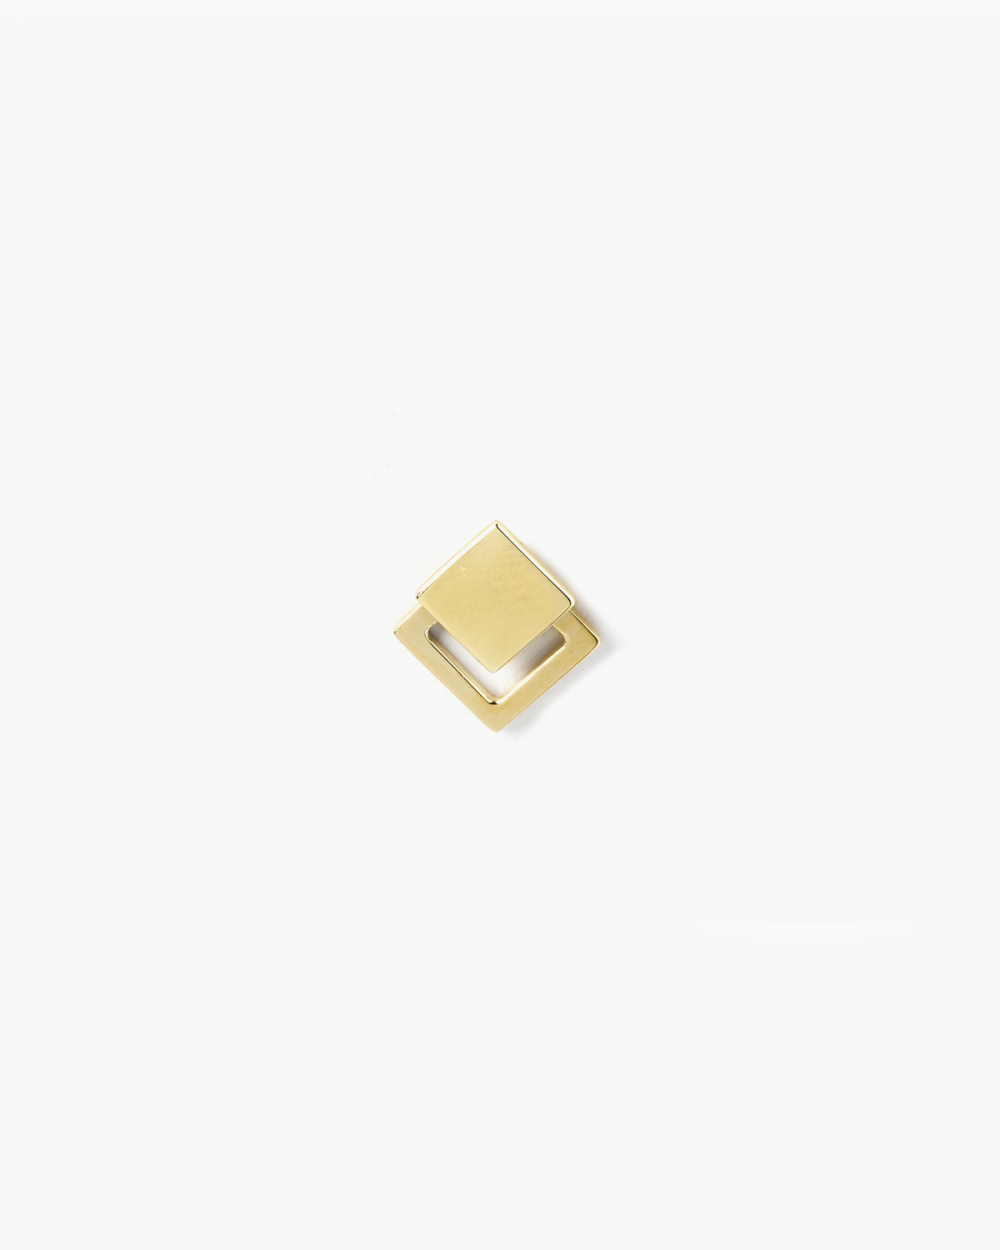 Earrings YELLOW GOLD FRAMED SQUARE PIERCING SINGLE LOBE EARRING NOVE25